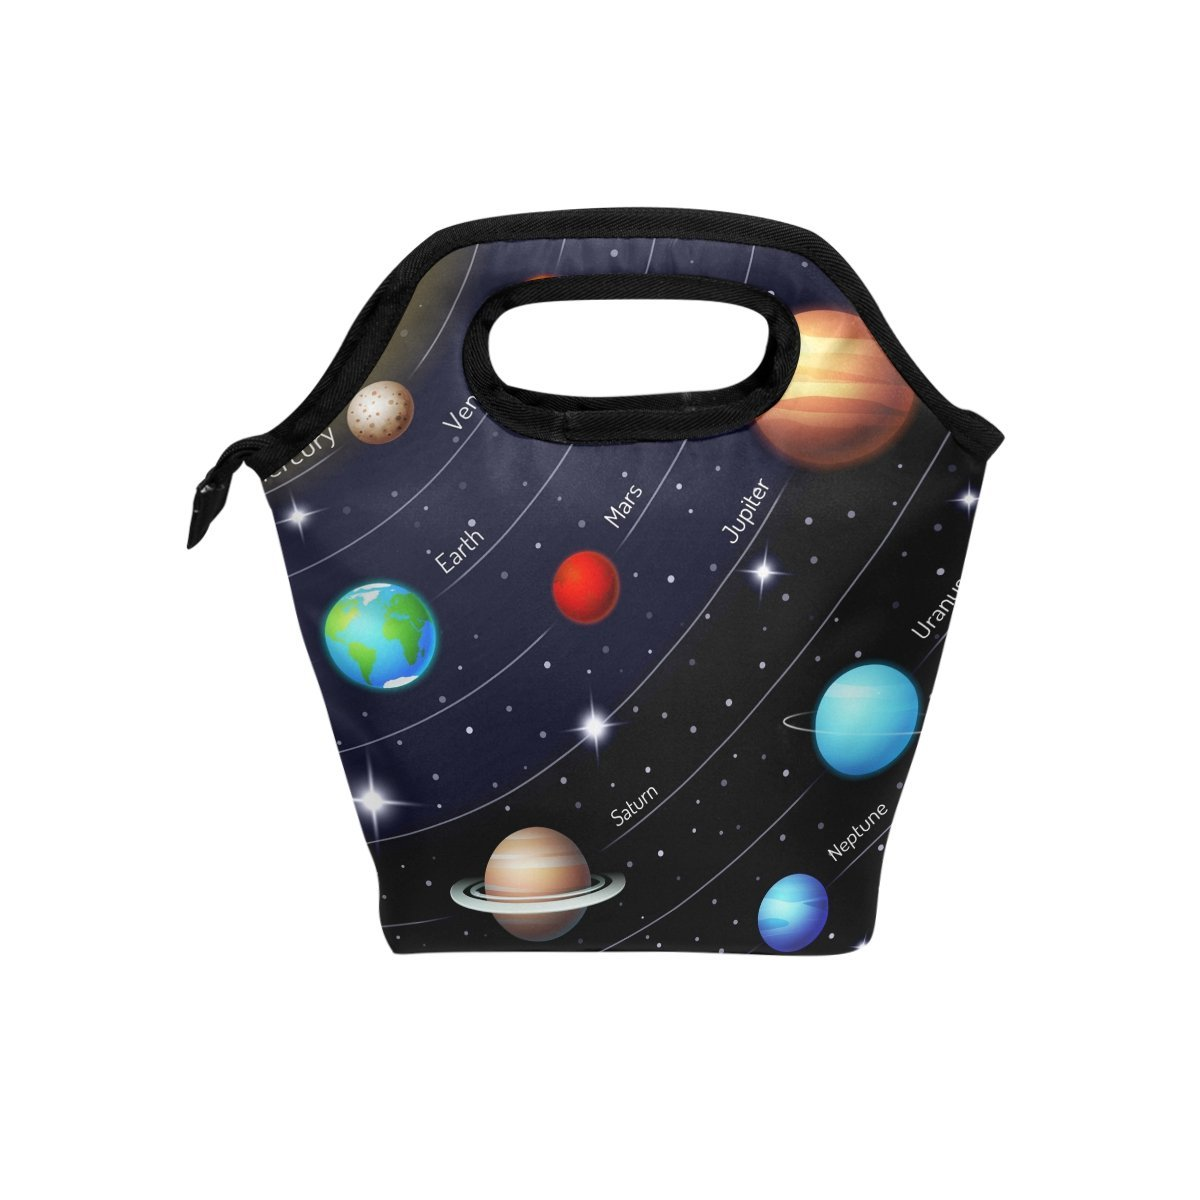 Bettken Lunch Bag Universe Galaxy Solar System Insulated Reusable Lunch Box Portable Lunch Tote Bag Meal Bag Ice Pack for Kids Boys Girls Adult Men Women